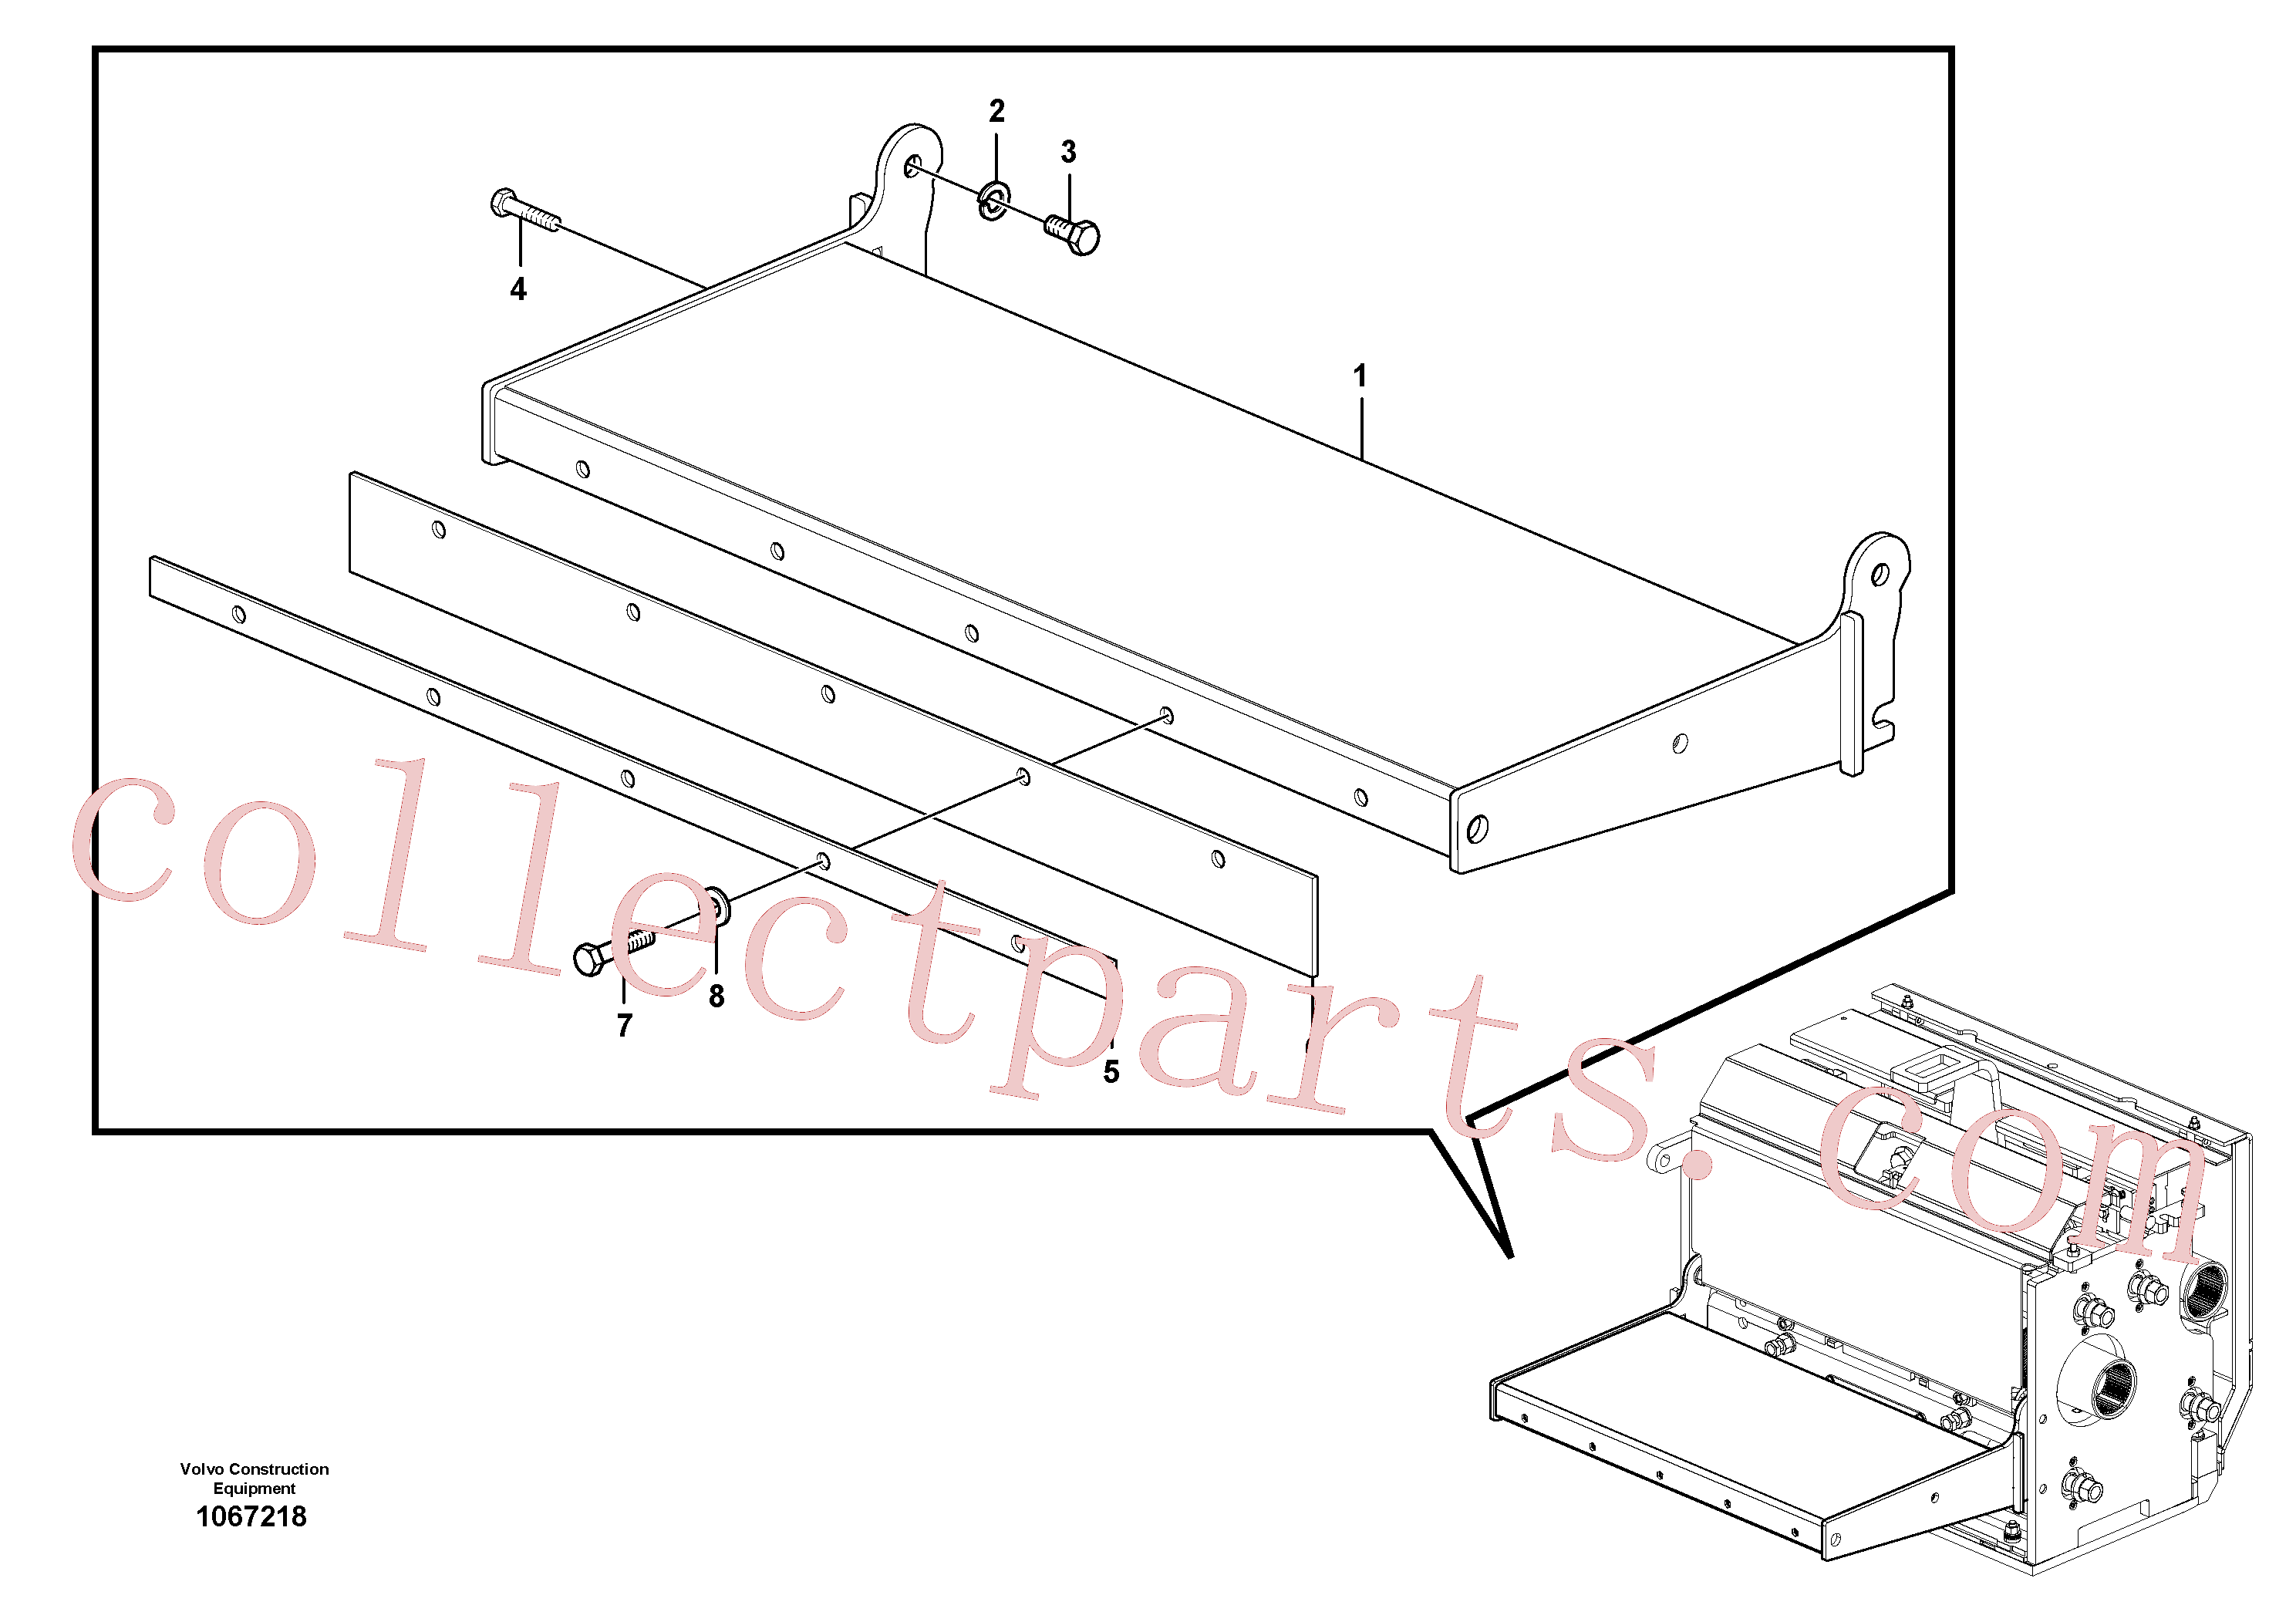 RM80765019 for Volvo Catwalk(1067218 assembly)